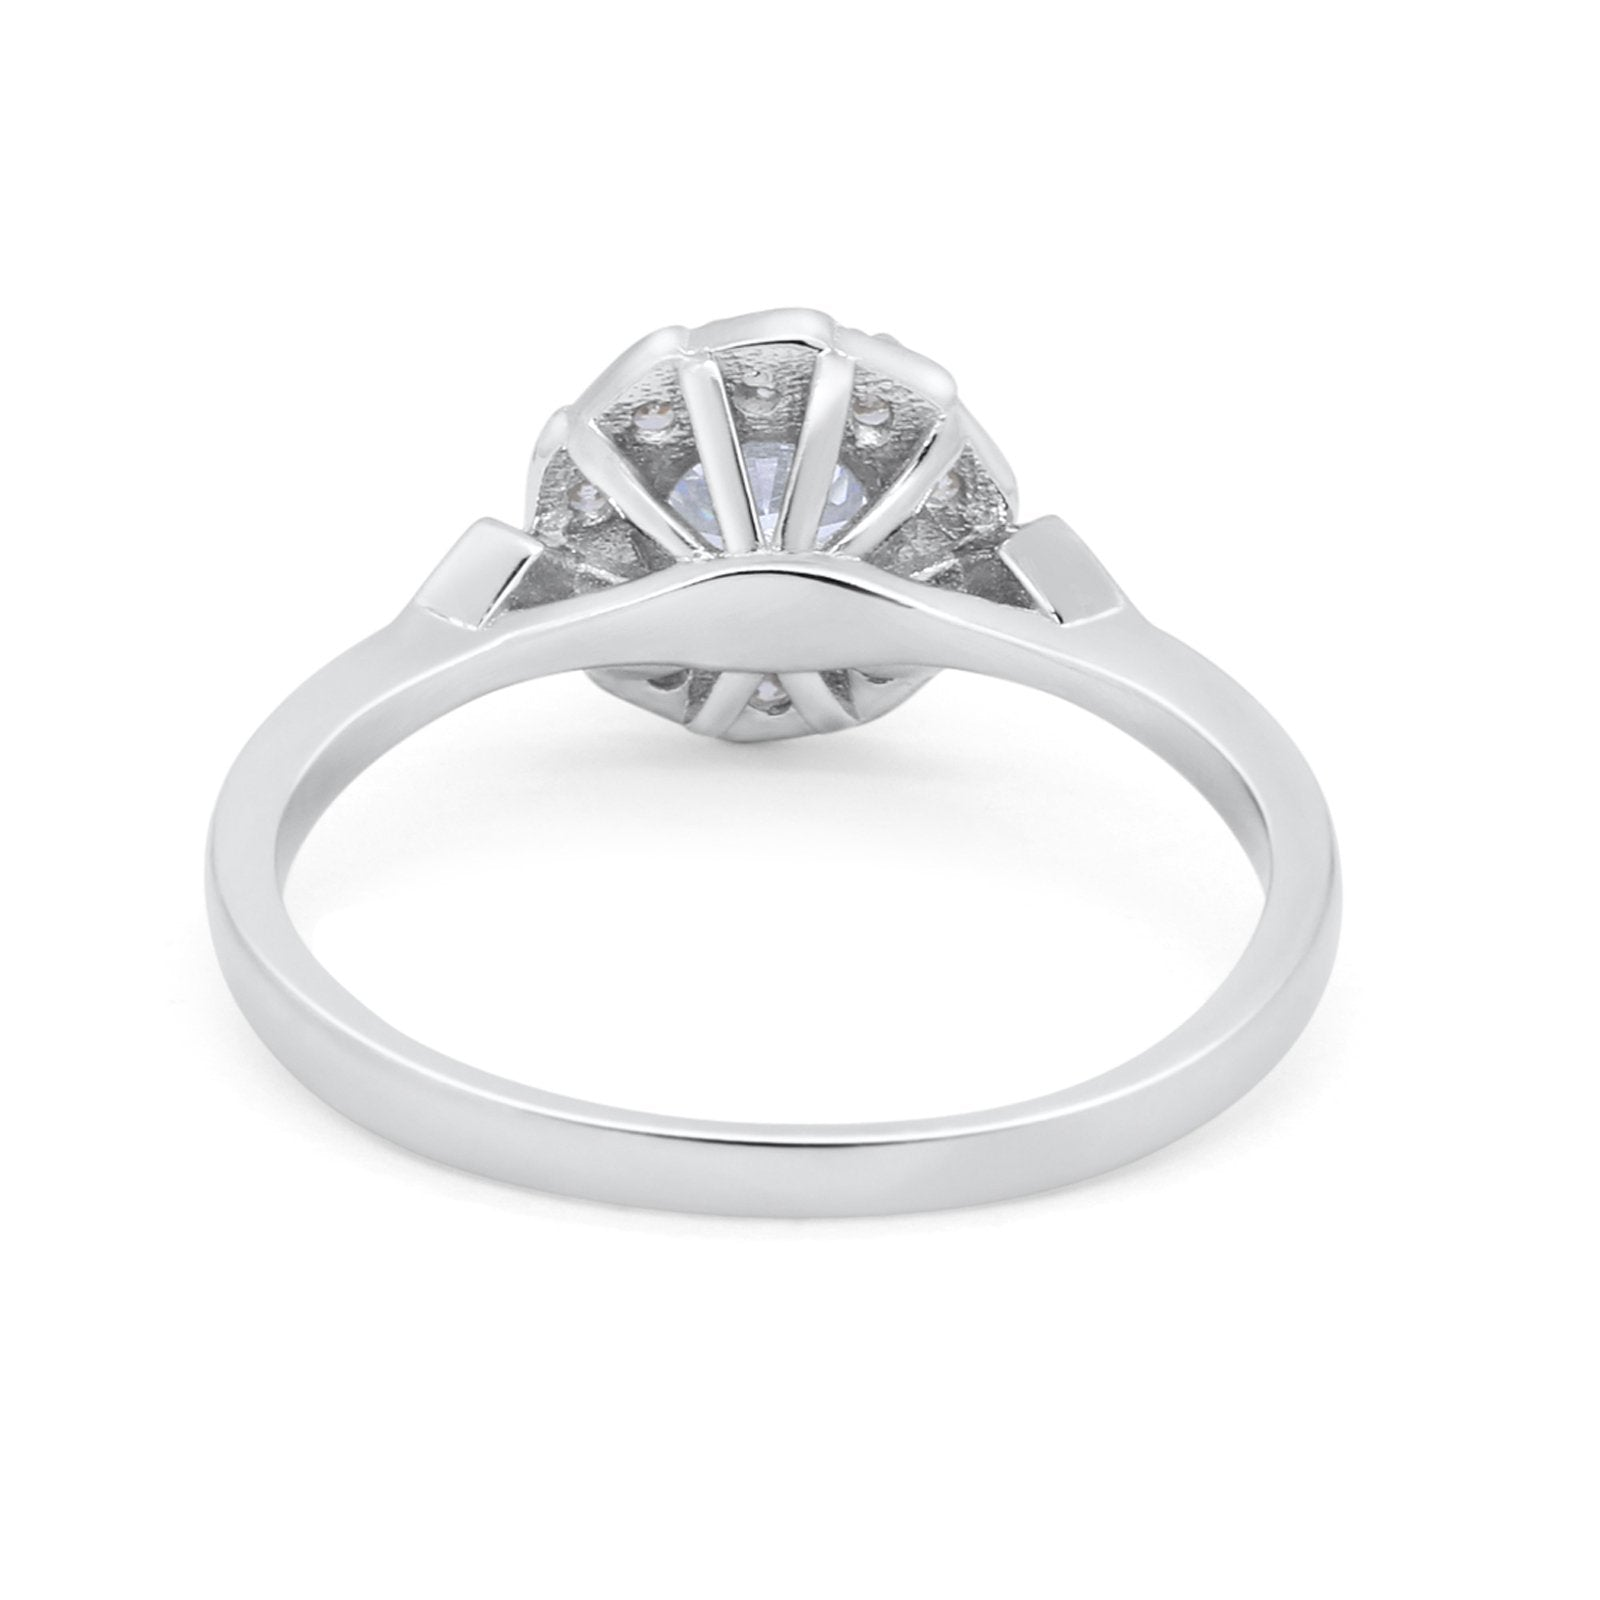 Halo Engagement Vintage Style Bridal Ring Round Simulated CZ 925 Sterling Silver